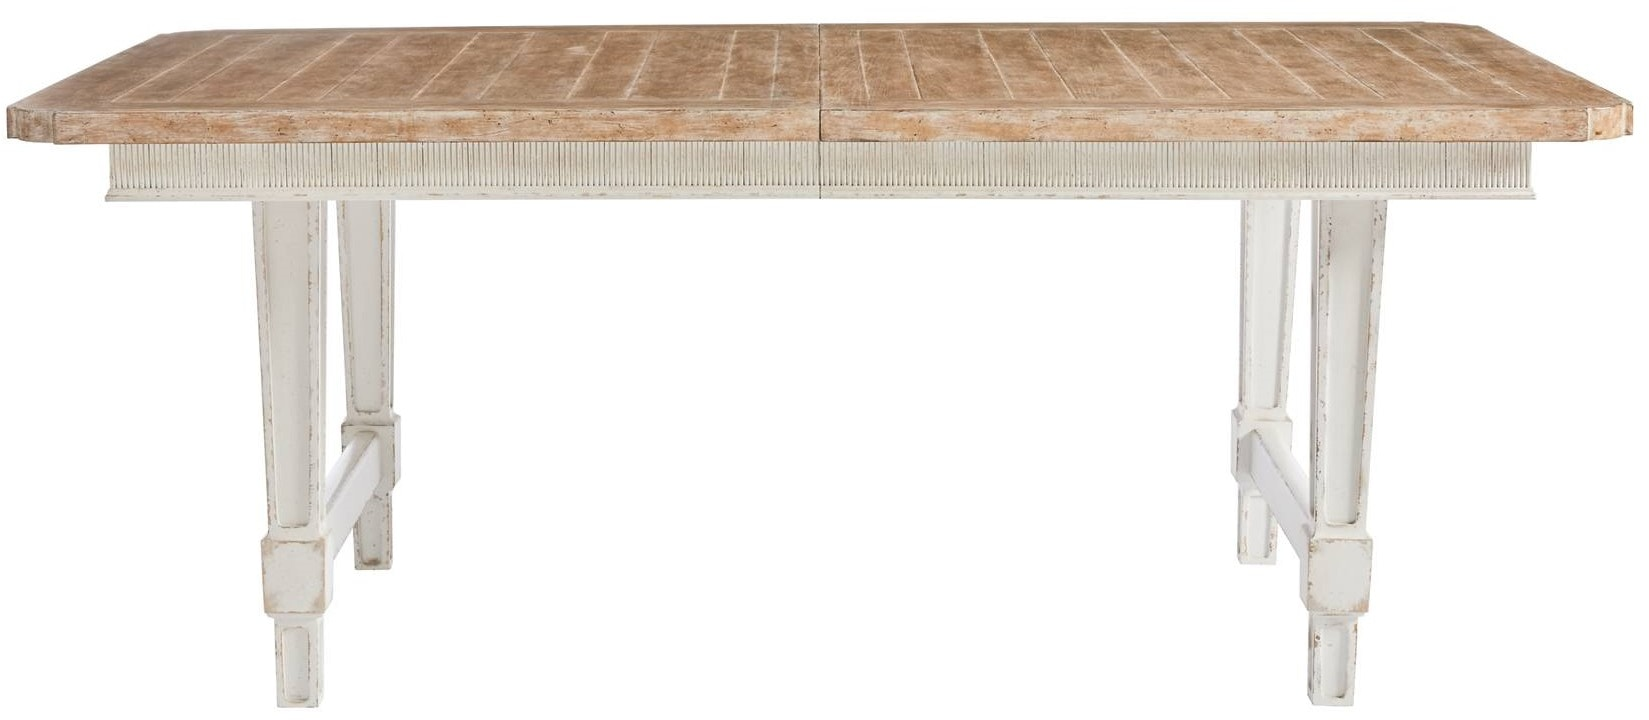 Stanley Furniture Dining Room Dining Table 615-21-36 - Flemington